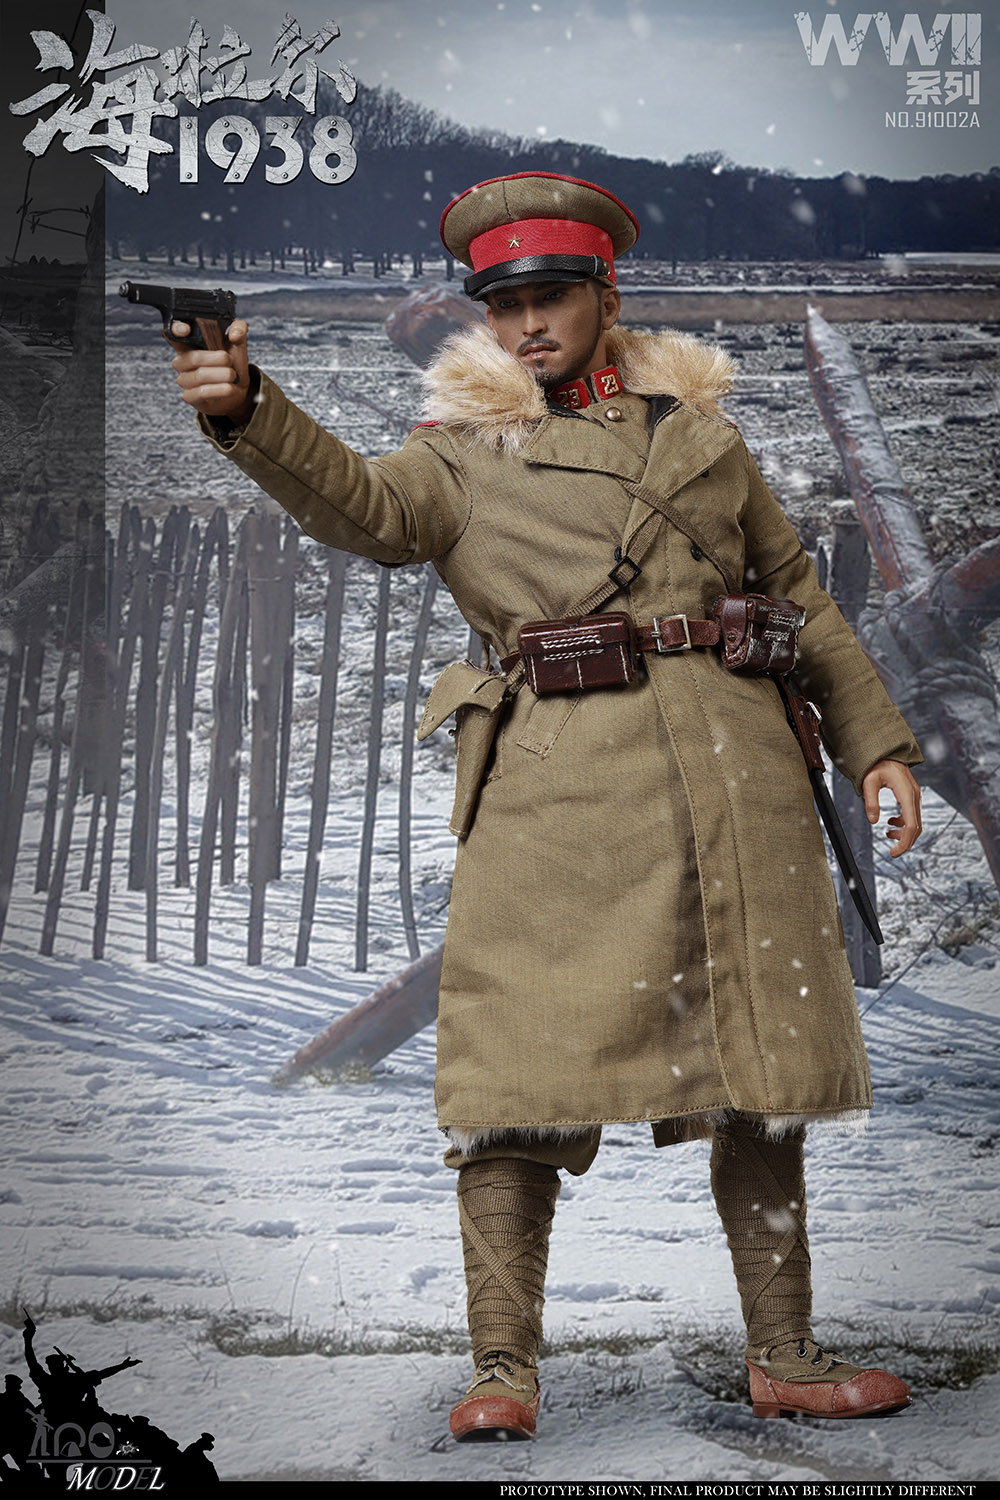 military - NEW PRODUCT: IQO Model: 1/6 WWII Series 1938 Hailar Scout (NO.91002A, B) 22050610